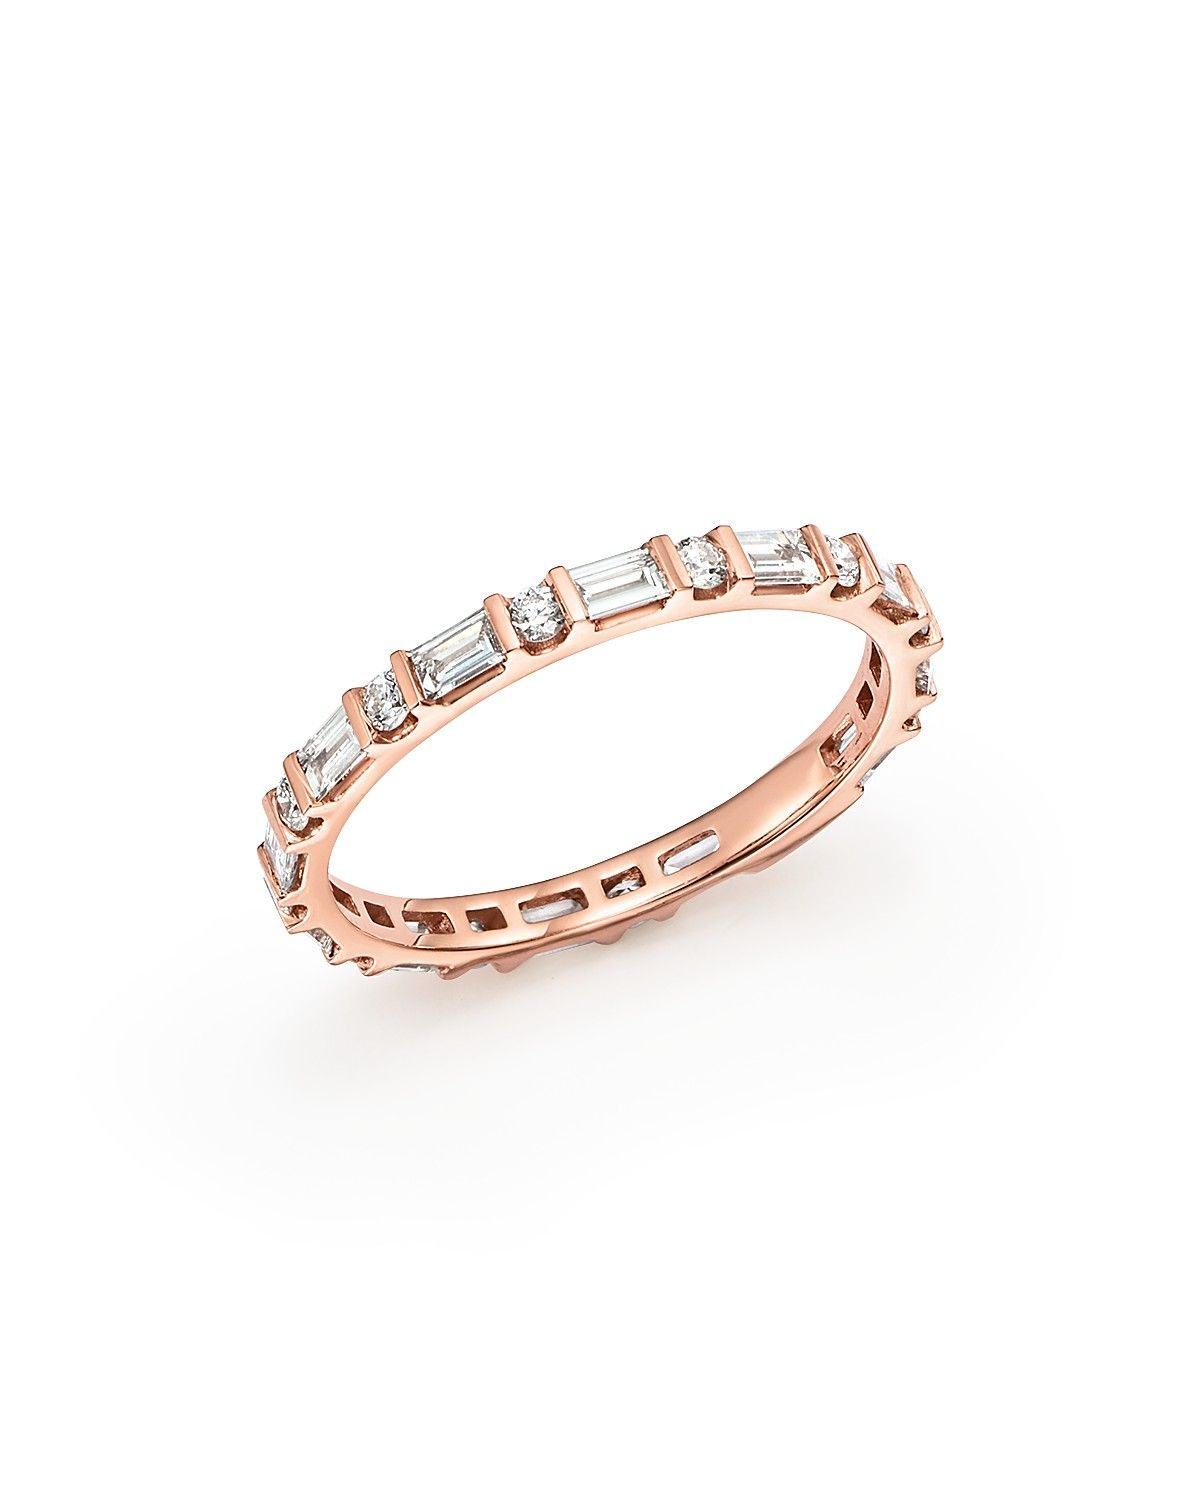 Bloomingdales Diamond Round Baguette Band in 14K Rose Gold 055